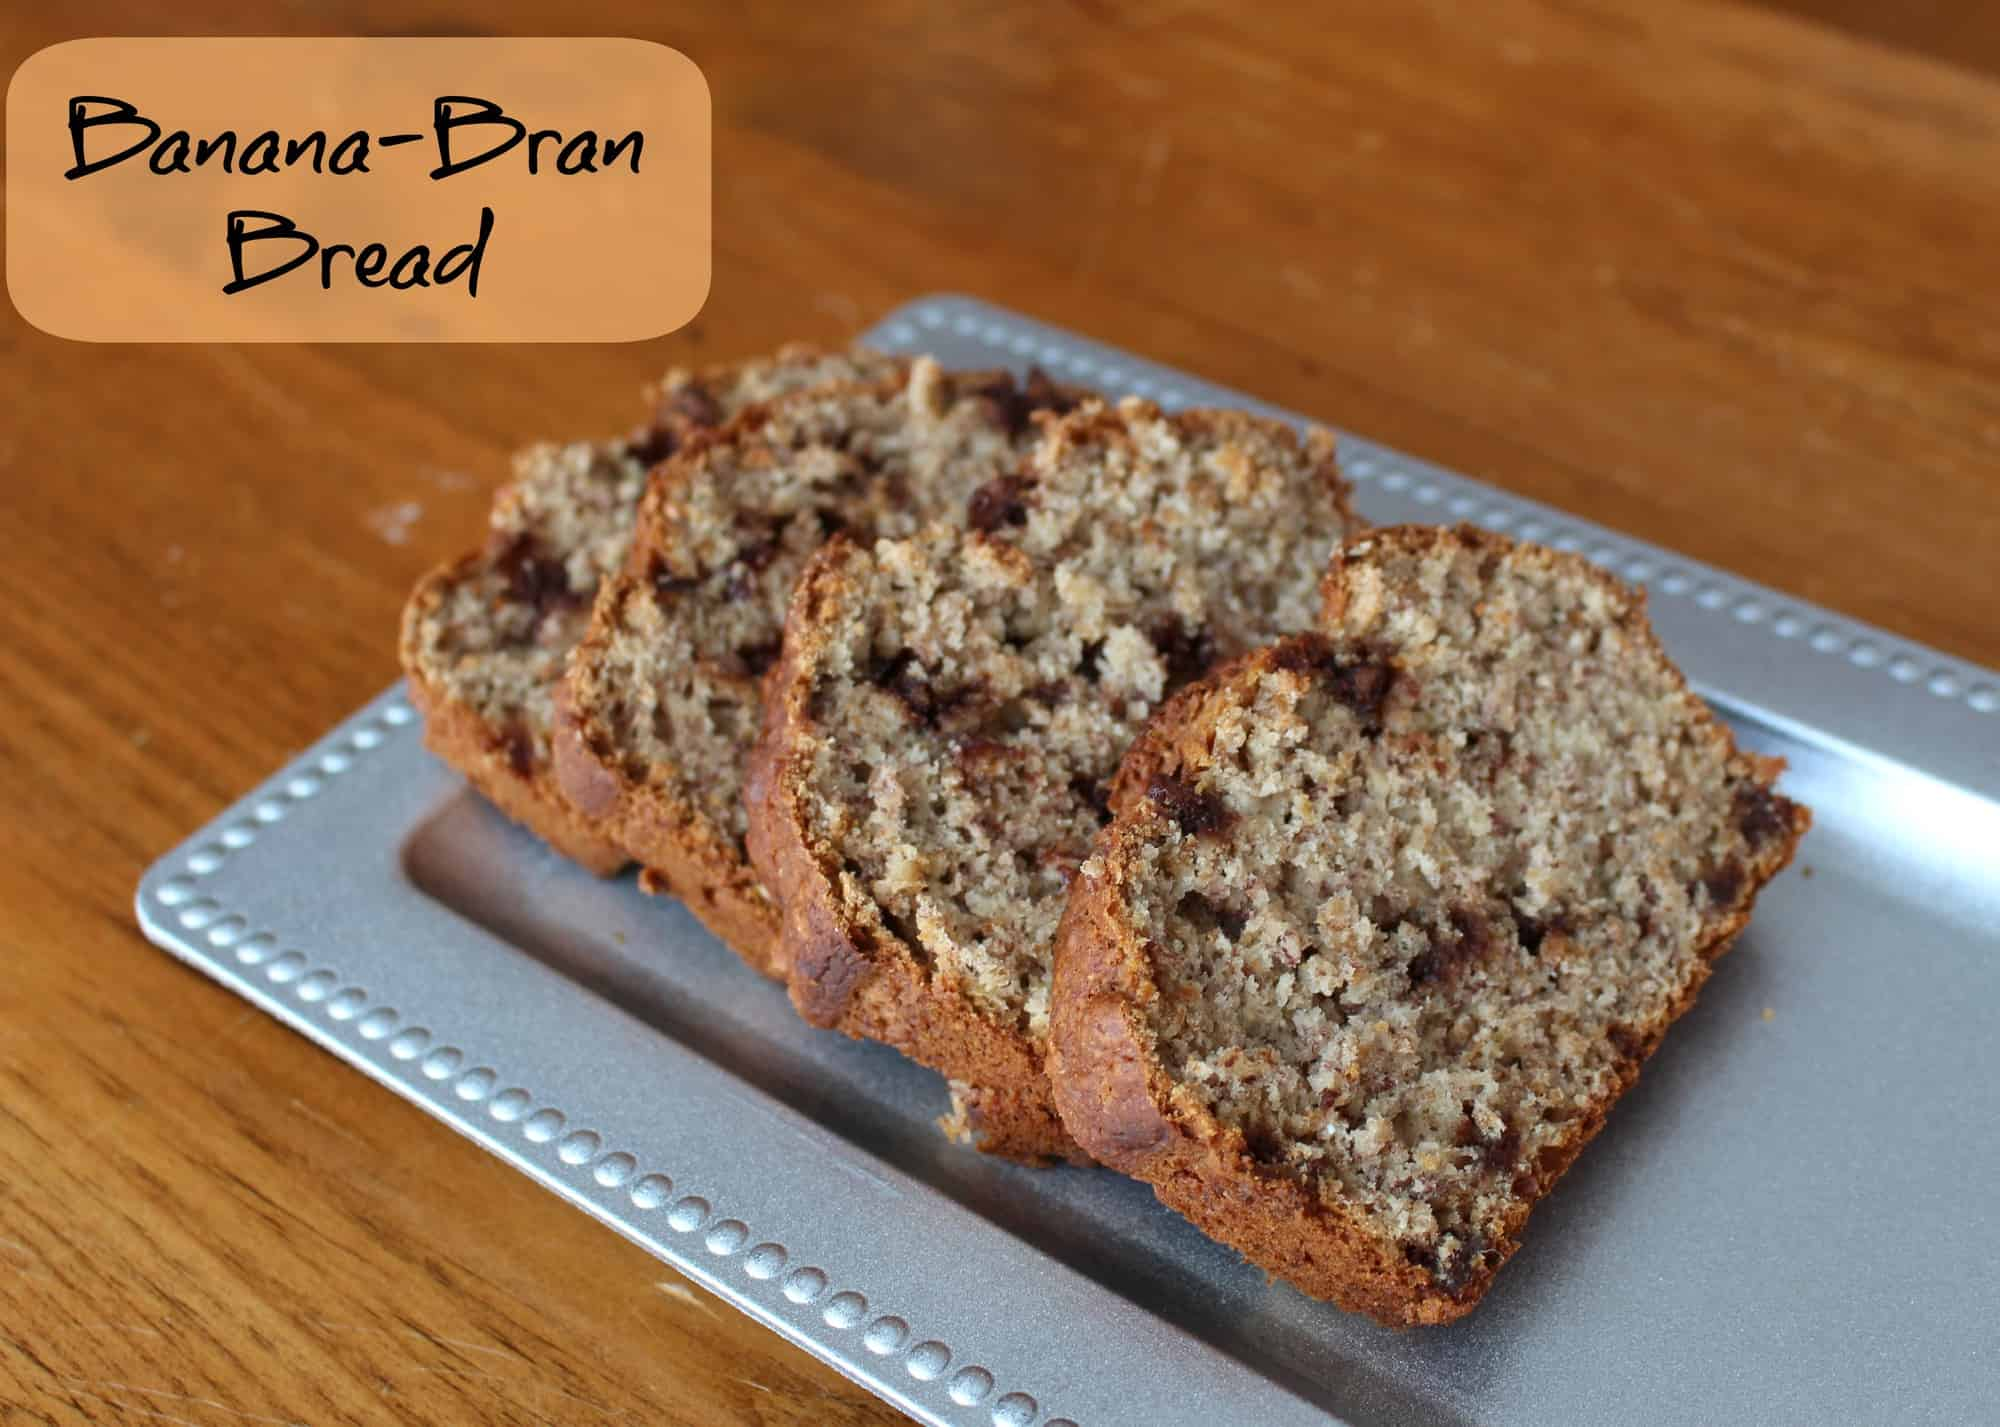 bran banana bread recipe with extra fibre via LittleMissKate.ca